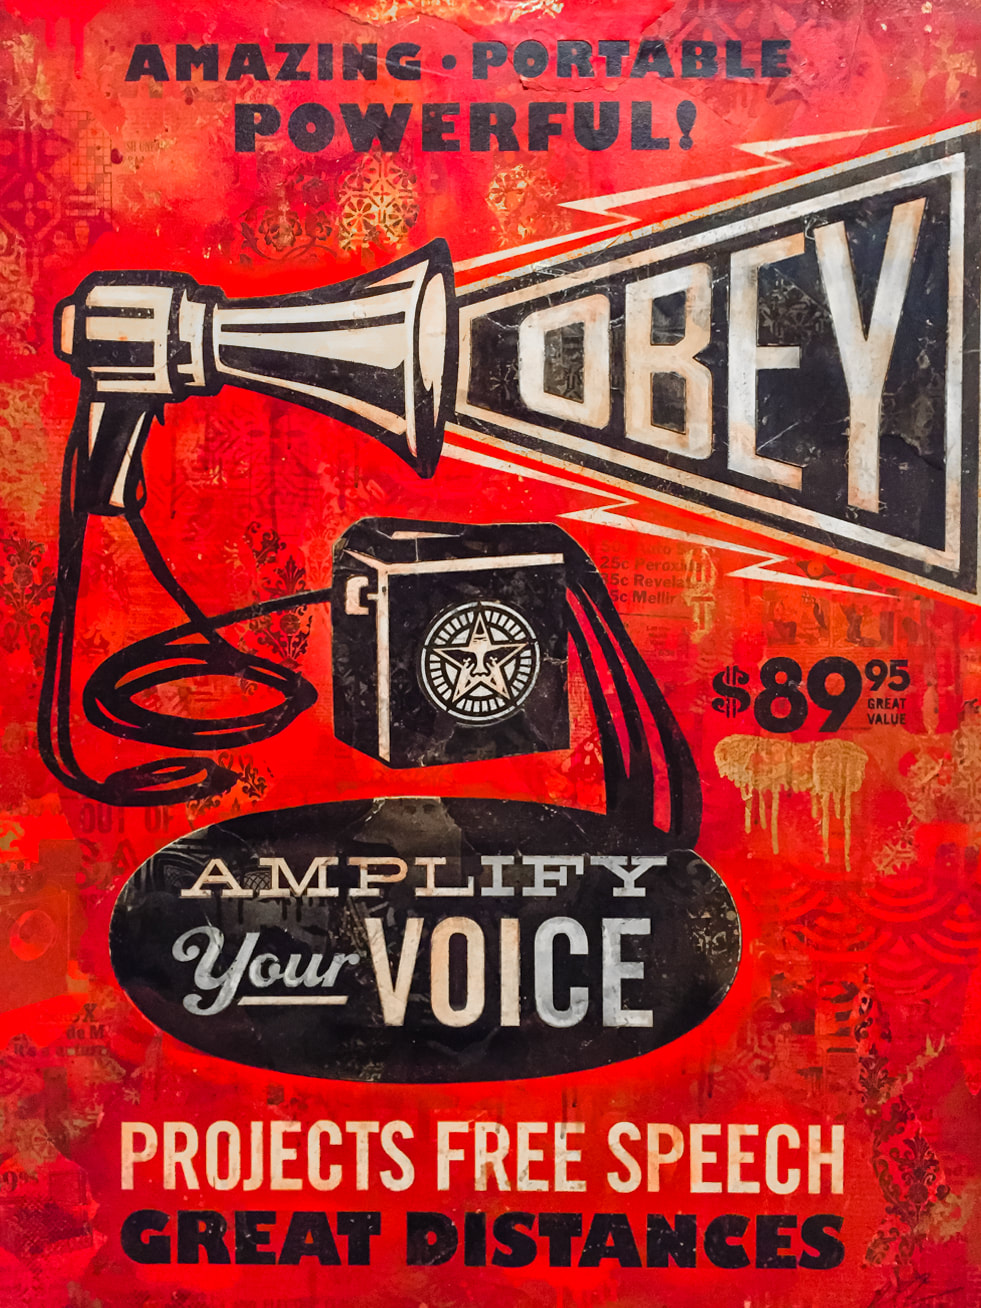 Singapore: Art From The Streets Exhibition at the ArtScience Museum - Megaphone Obey - Shepard Fairey (Obey) - 2012.